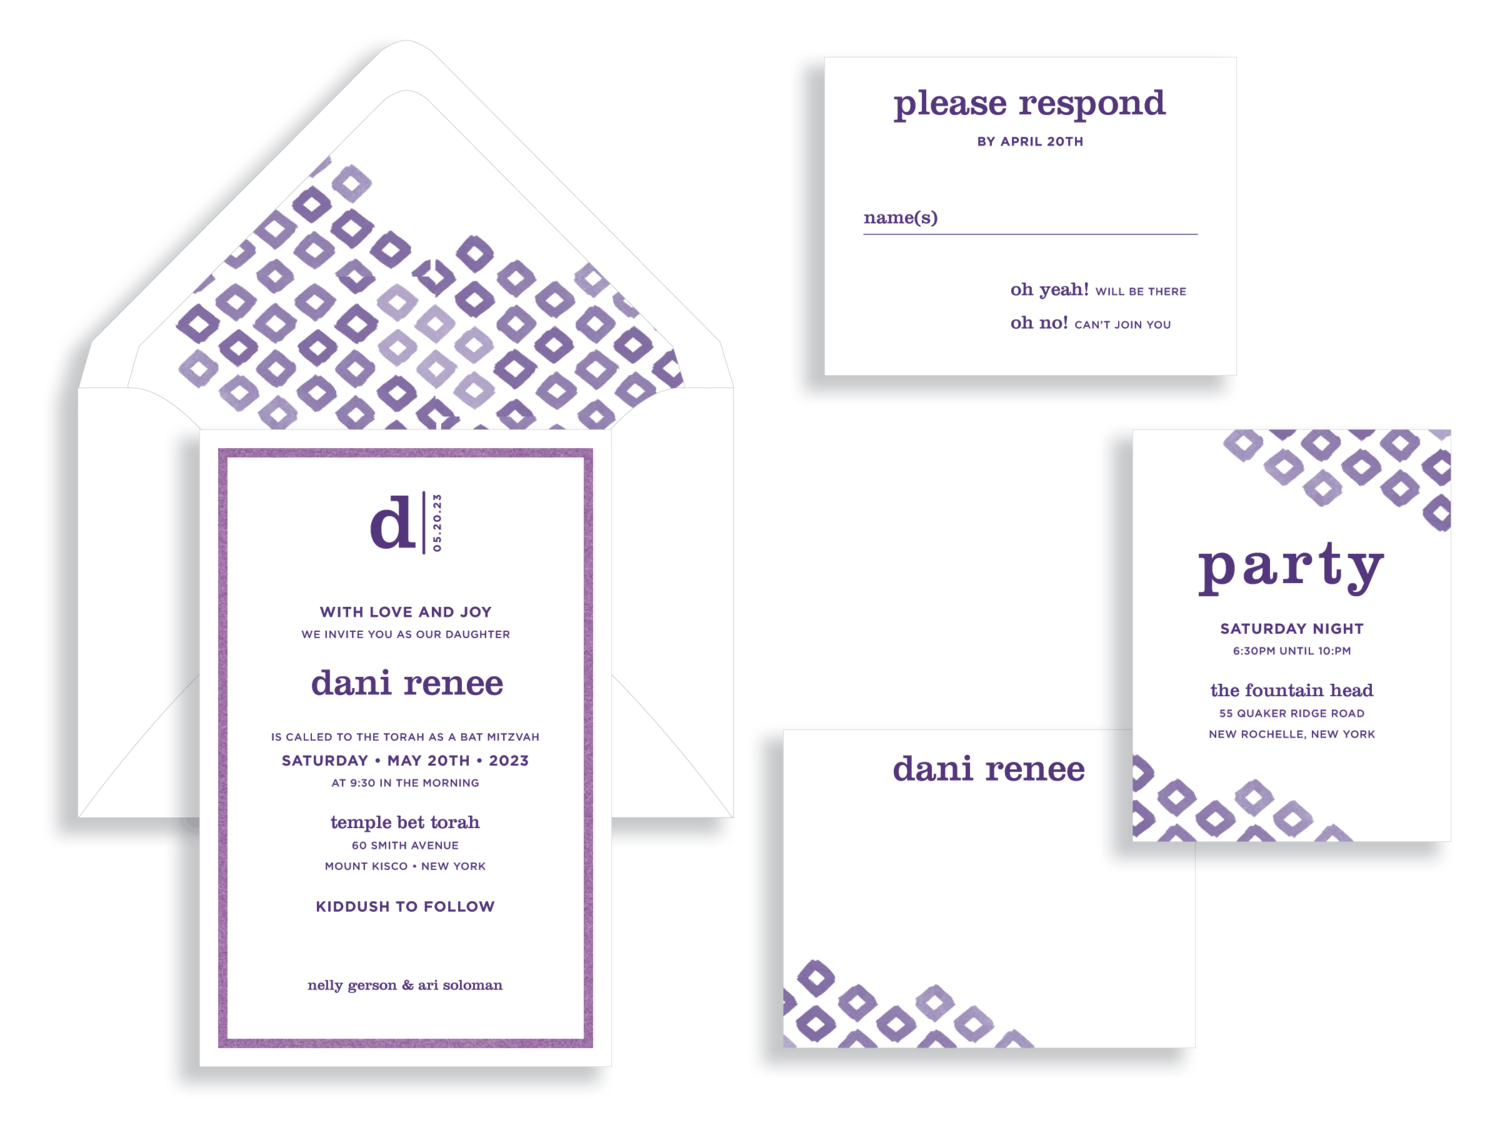 Dani Renee Ikat Bat Mitzvah invitation in purple and white.  Bat Mitzvah invitations Northern Virginia Fairfax.